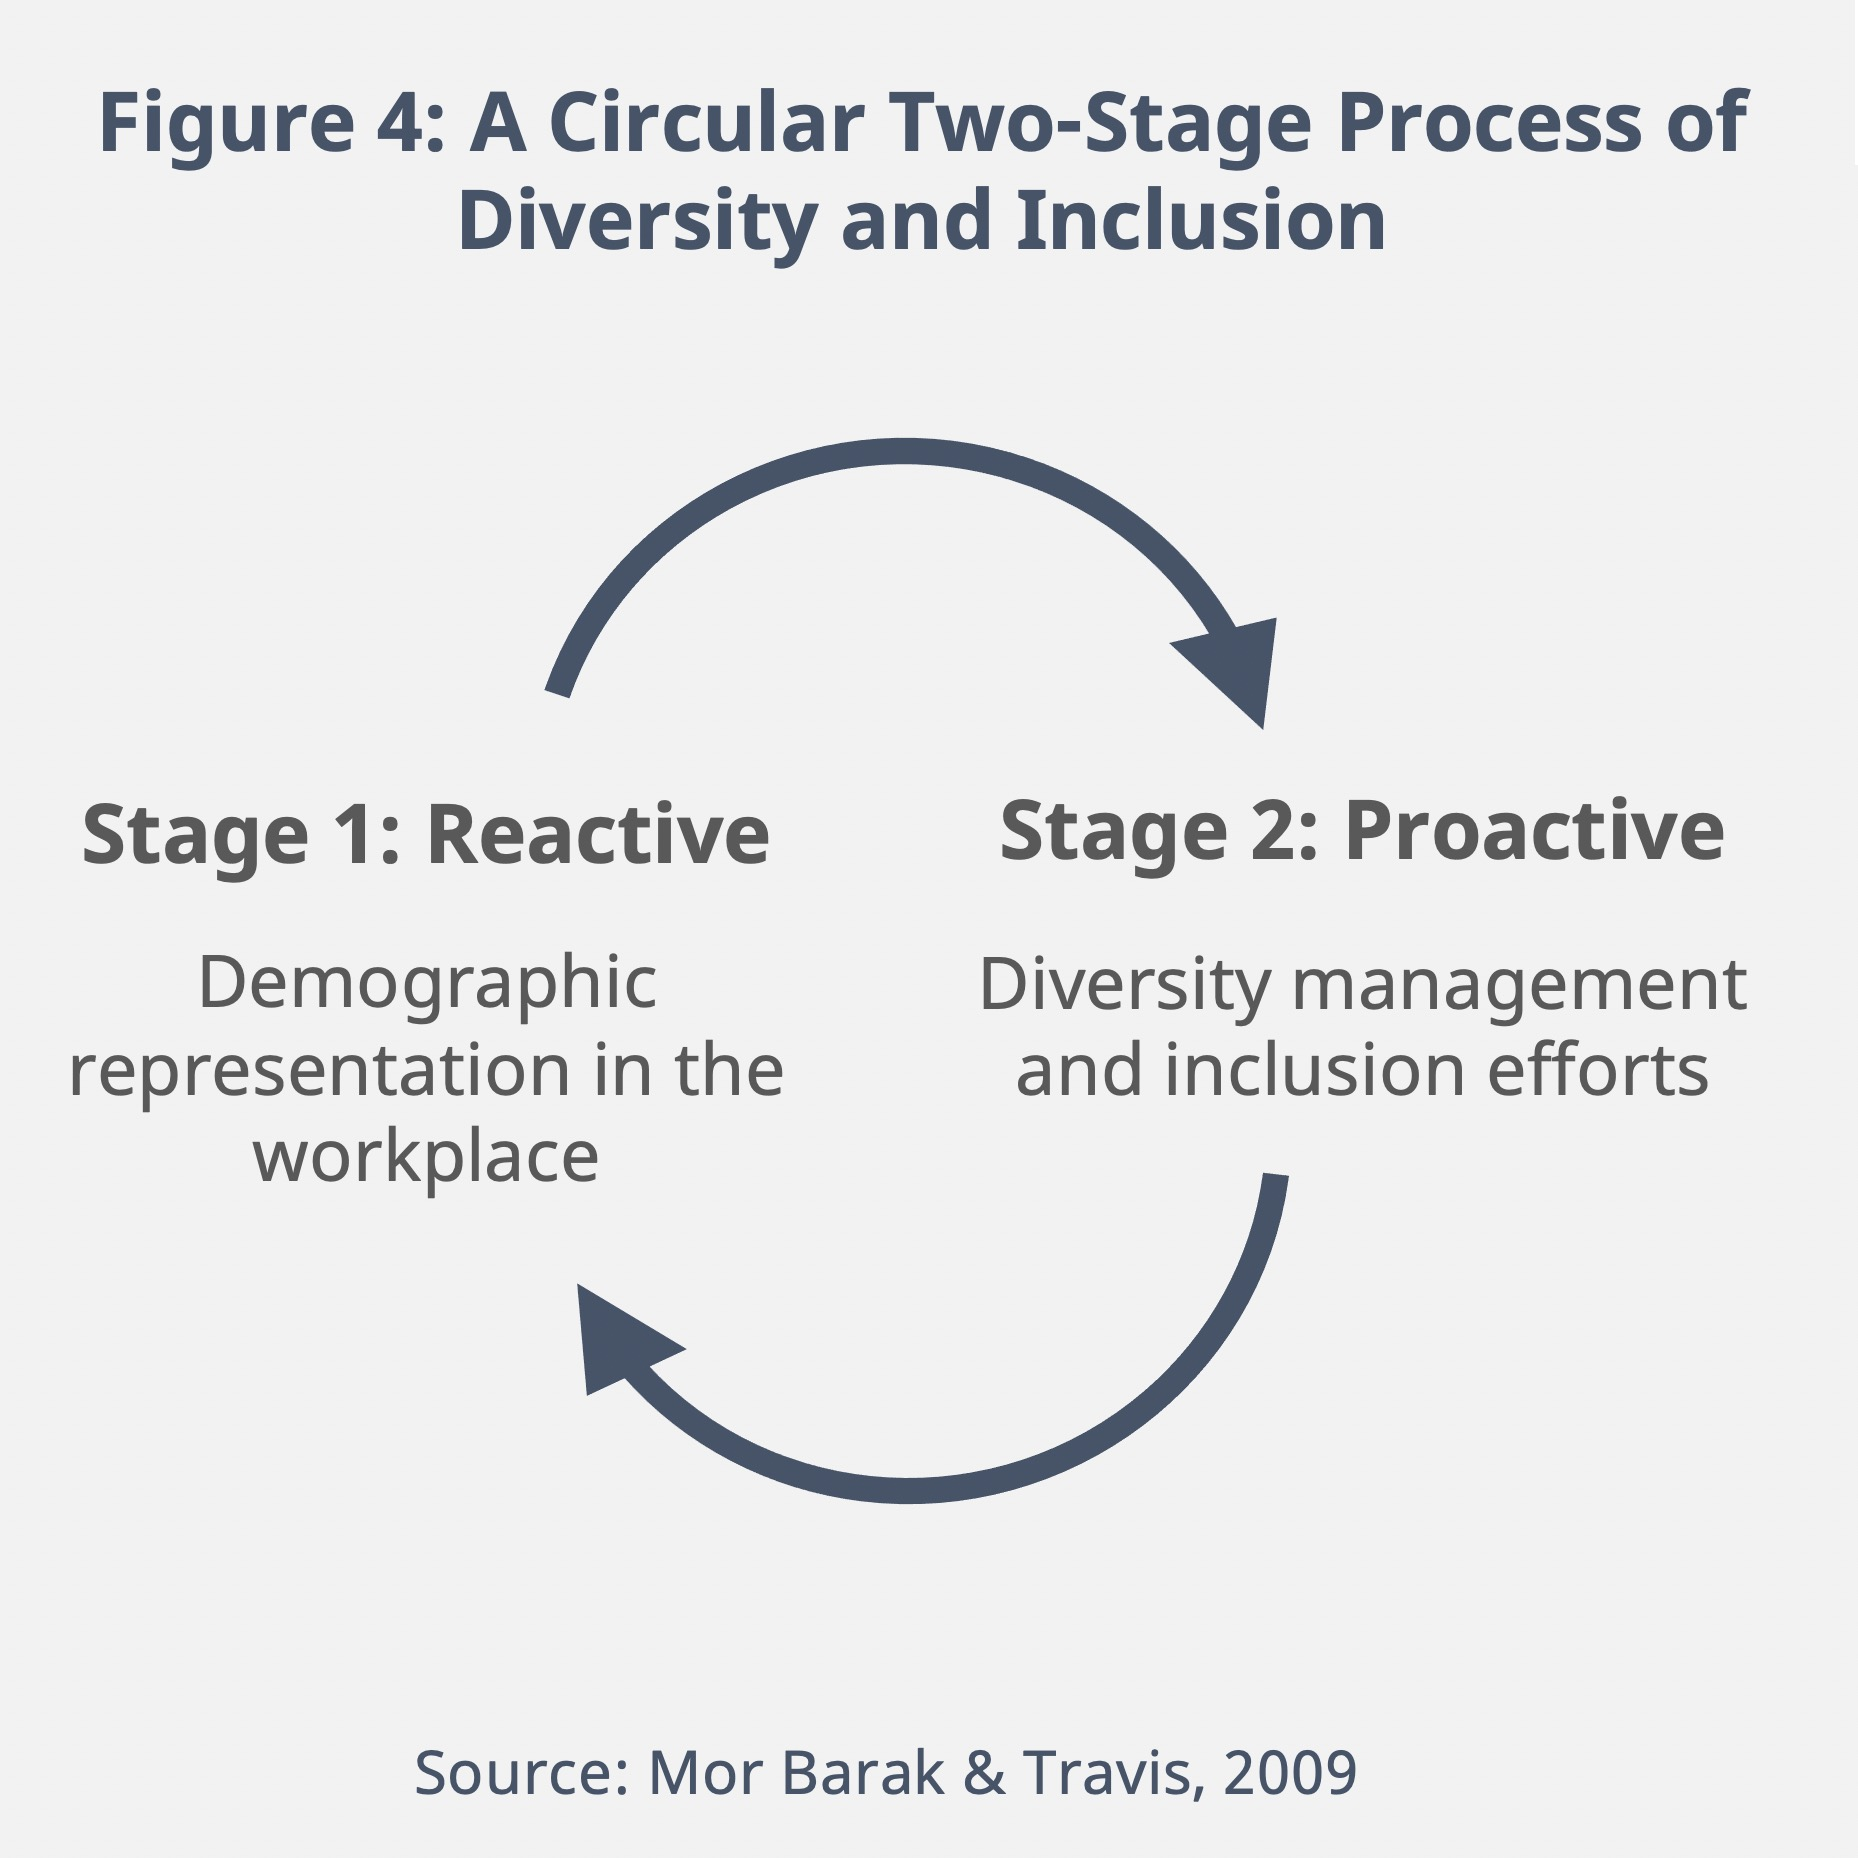 Figure 4: A Circular Two-Stage Process of Diversity and Inclusion